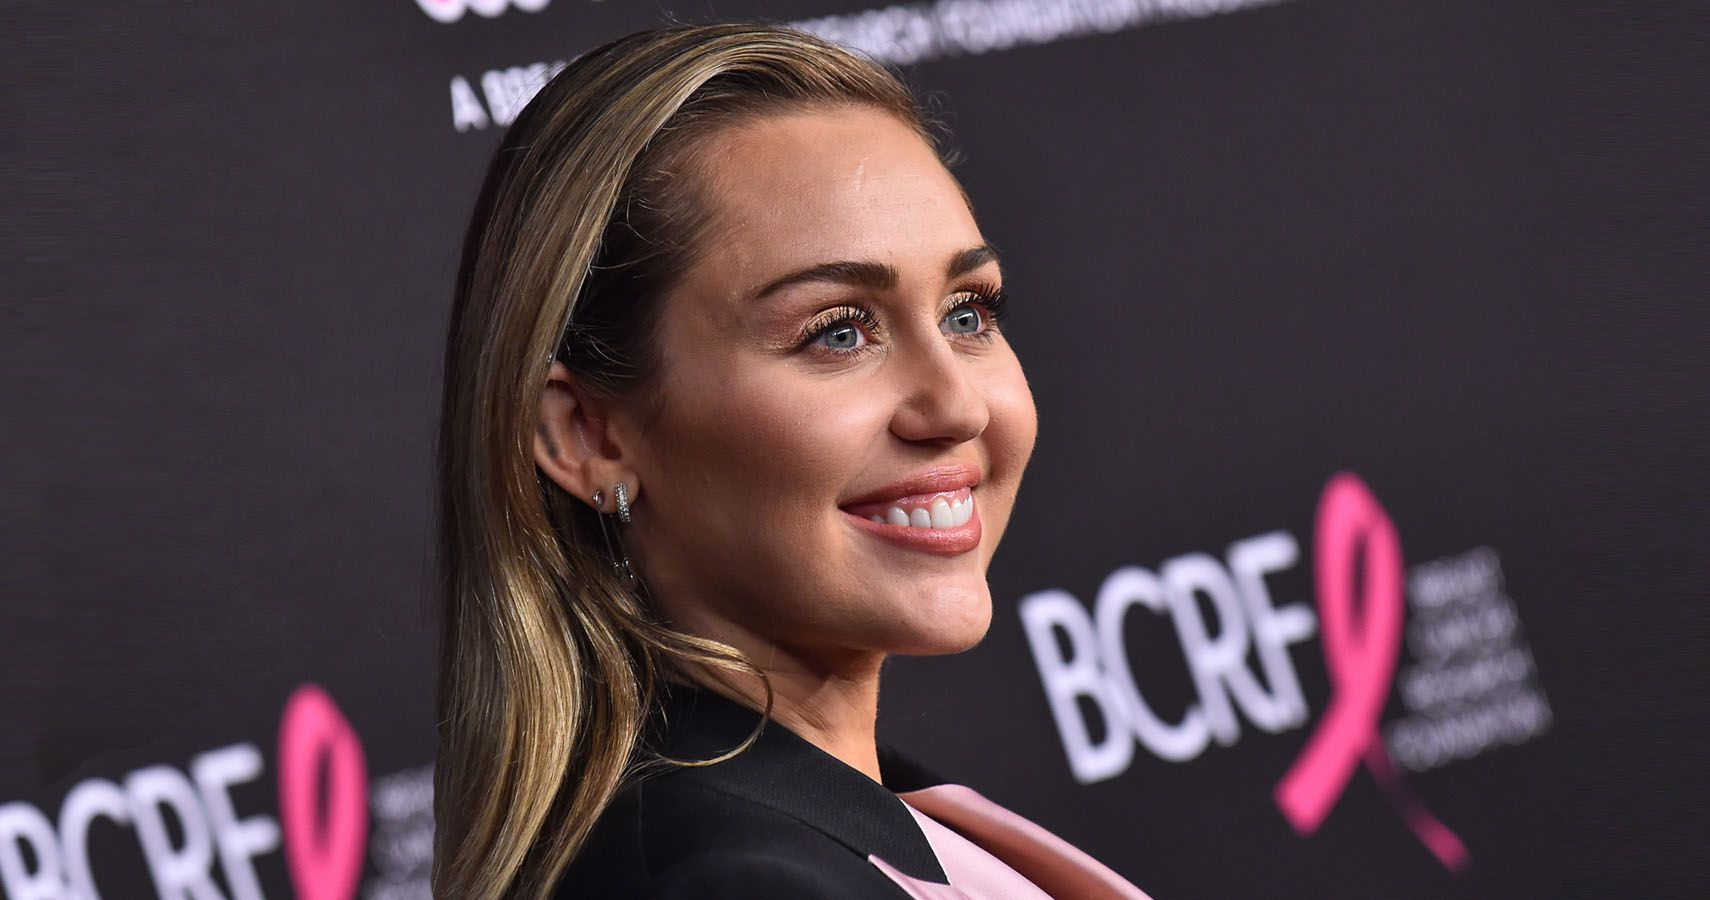 Miley Cyrus Signs Deal With NBC Universal To Develop Programs & Specials